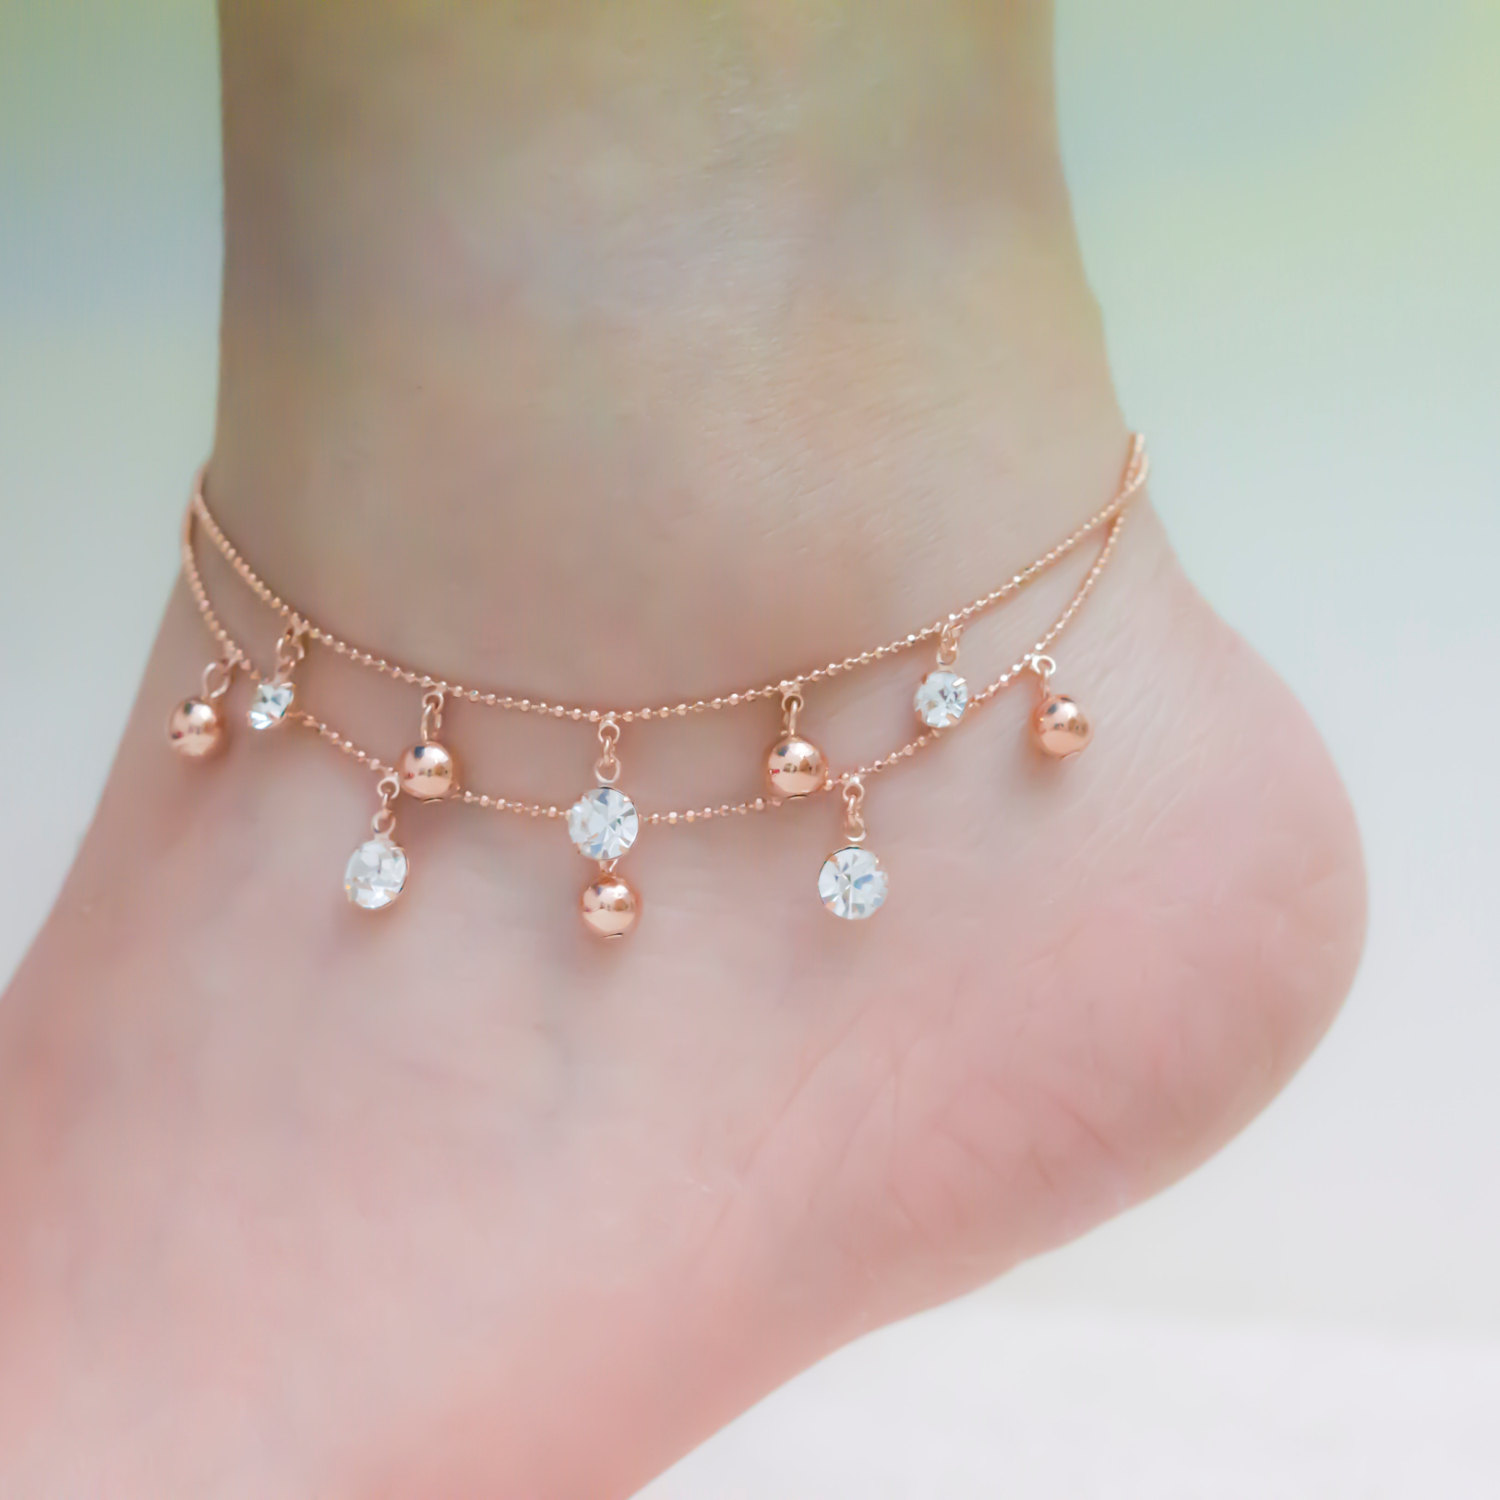 classy dazzling bracelets men ankle inspiration with gold jewellery ksvhs leather s silver ideas wear bracelet anklet a pretty beautiful design for mens uk should